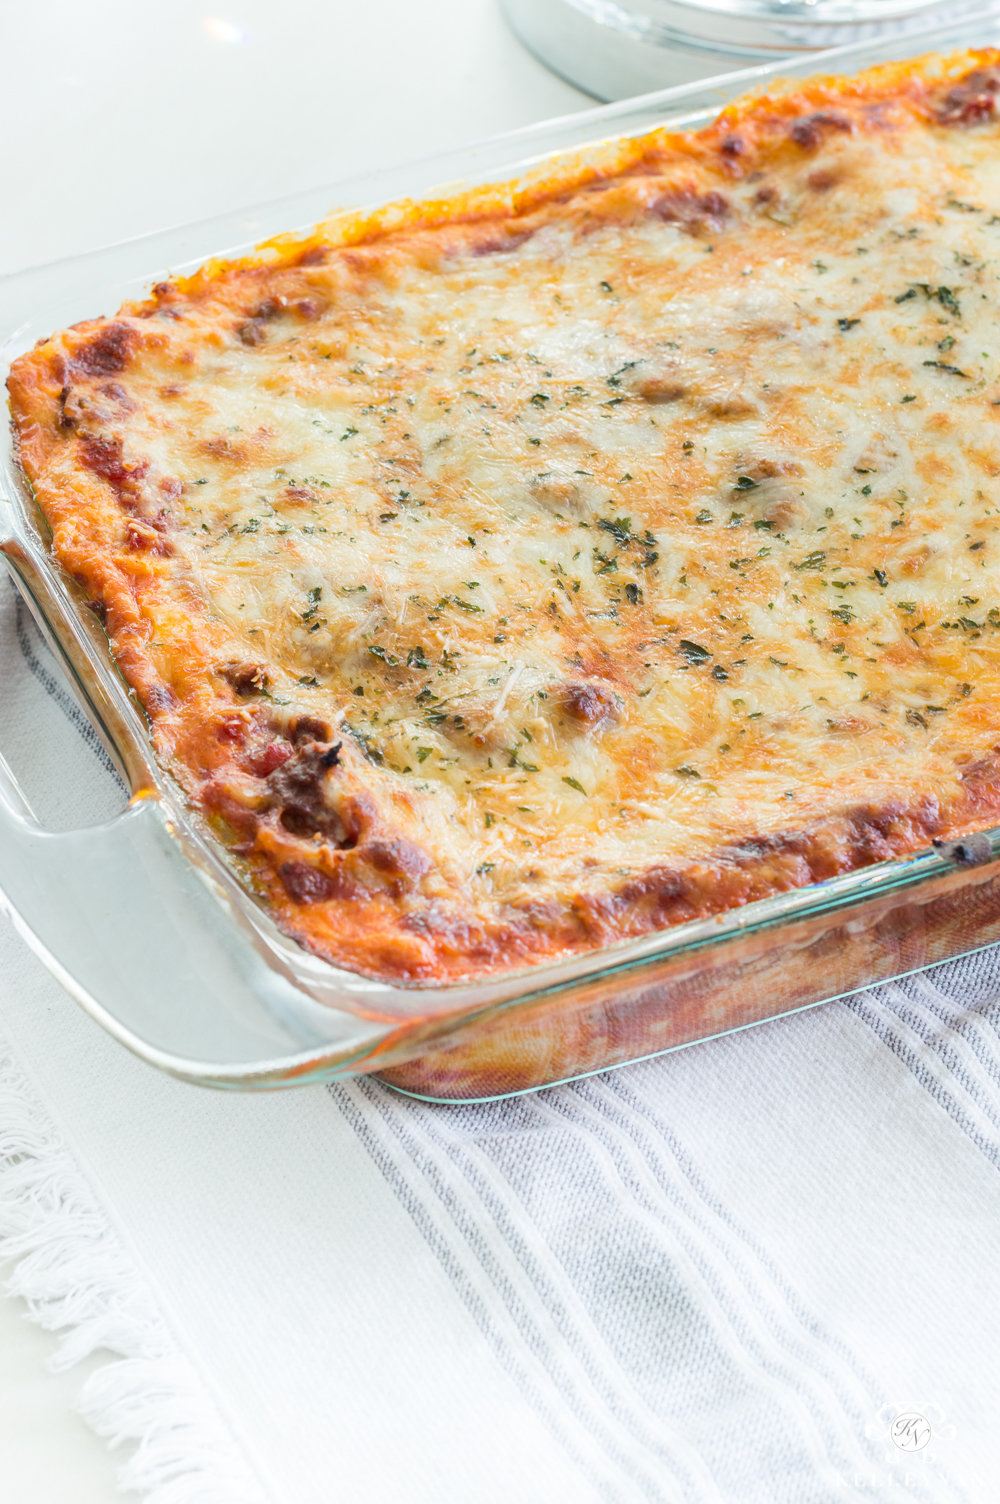 Favorite Lasagna Recipe for Christmas Eve with ground beef instead of sausage